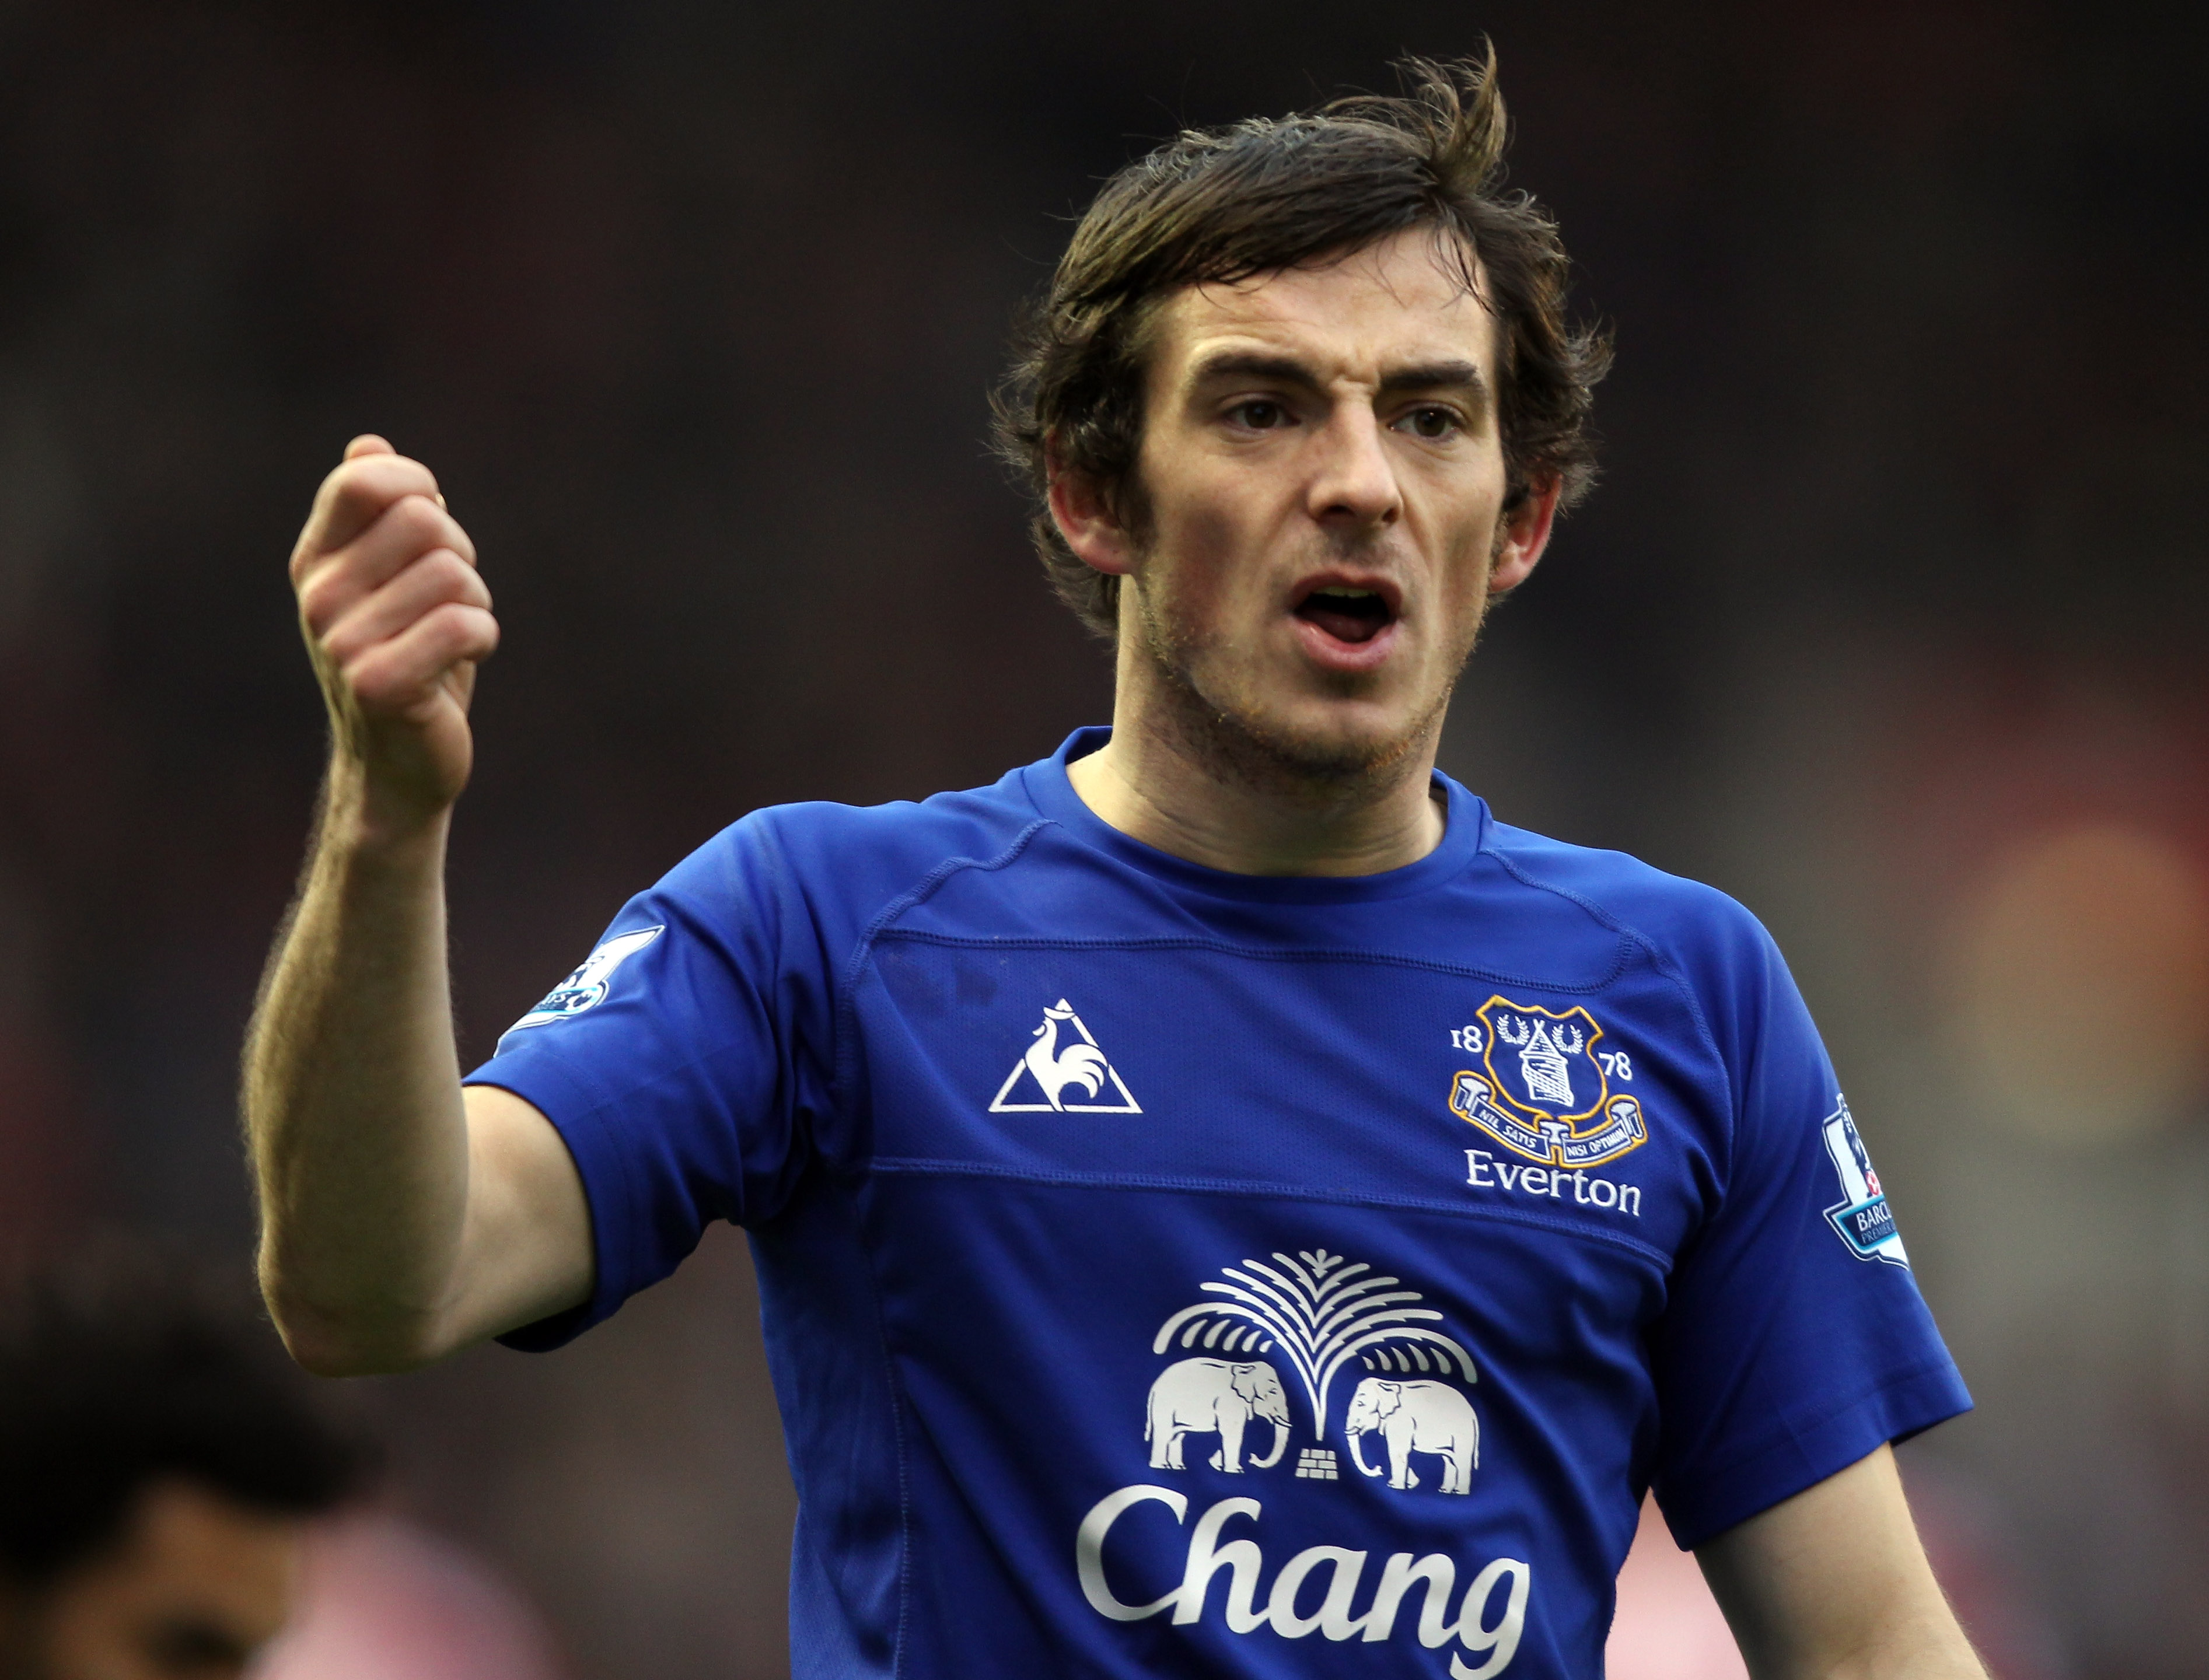 STOKE ON TRENT, ENGLAND - JANUARY 01:  Leighton Baines of Everton during the Barclays Premier League match between Stoke City and Everton at the Britannia Stadium on January 1, 2011 in Stoke on Trent, England.  (Photo by Ross Kinnaird/Getty Images)